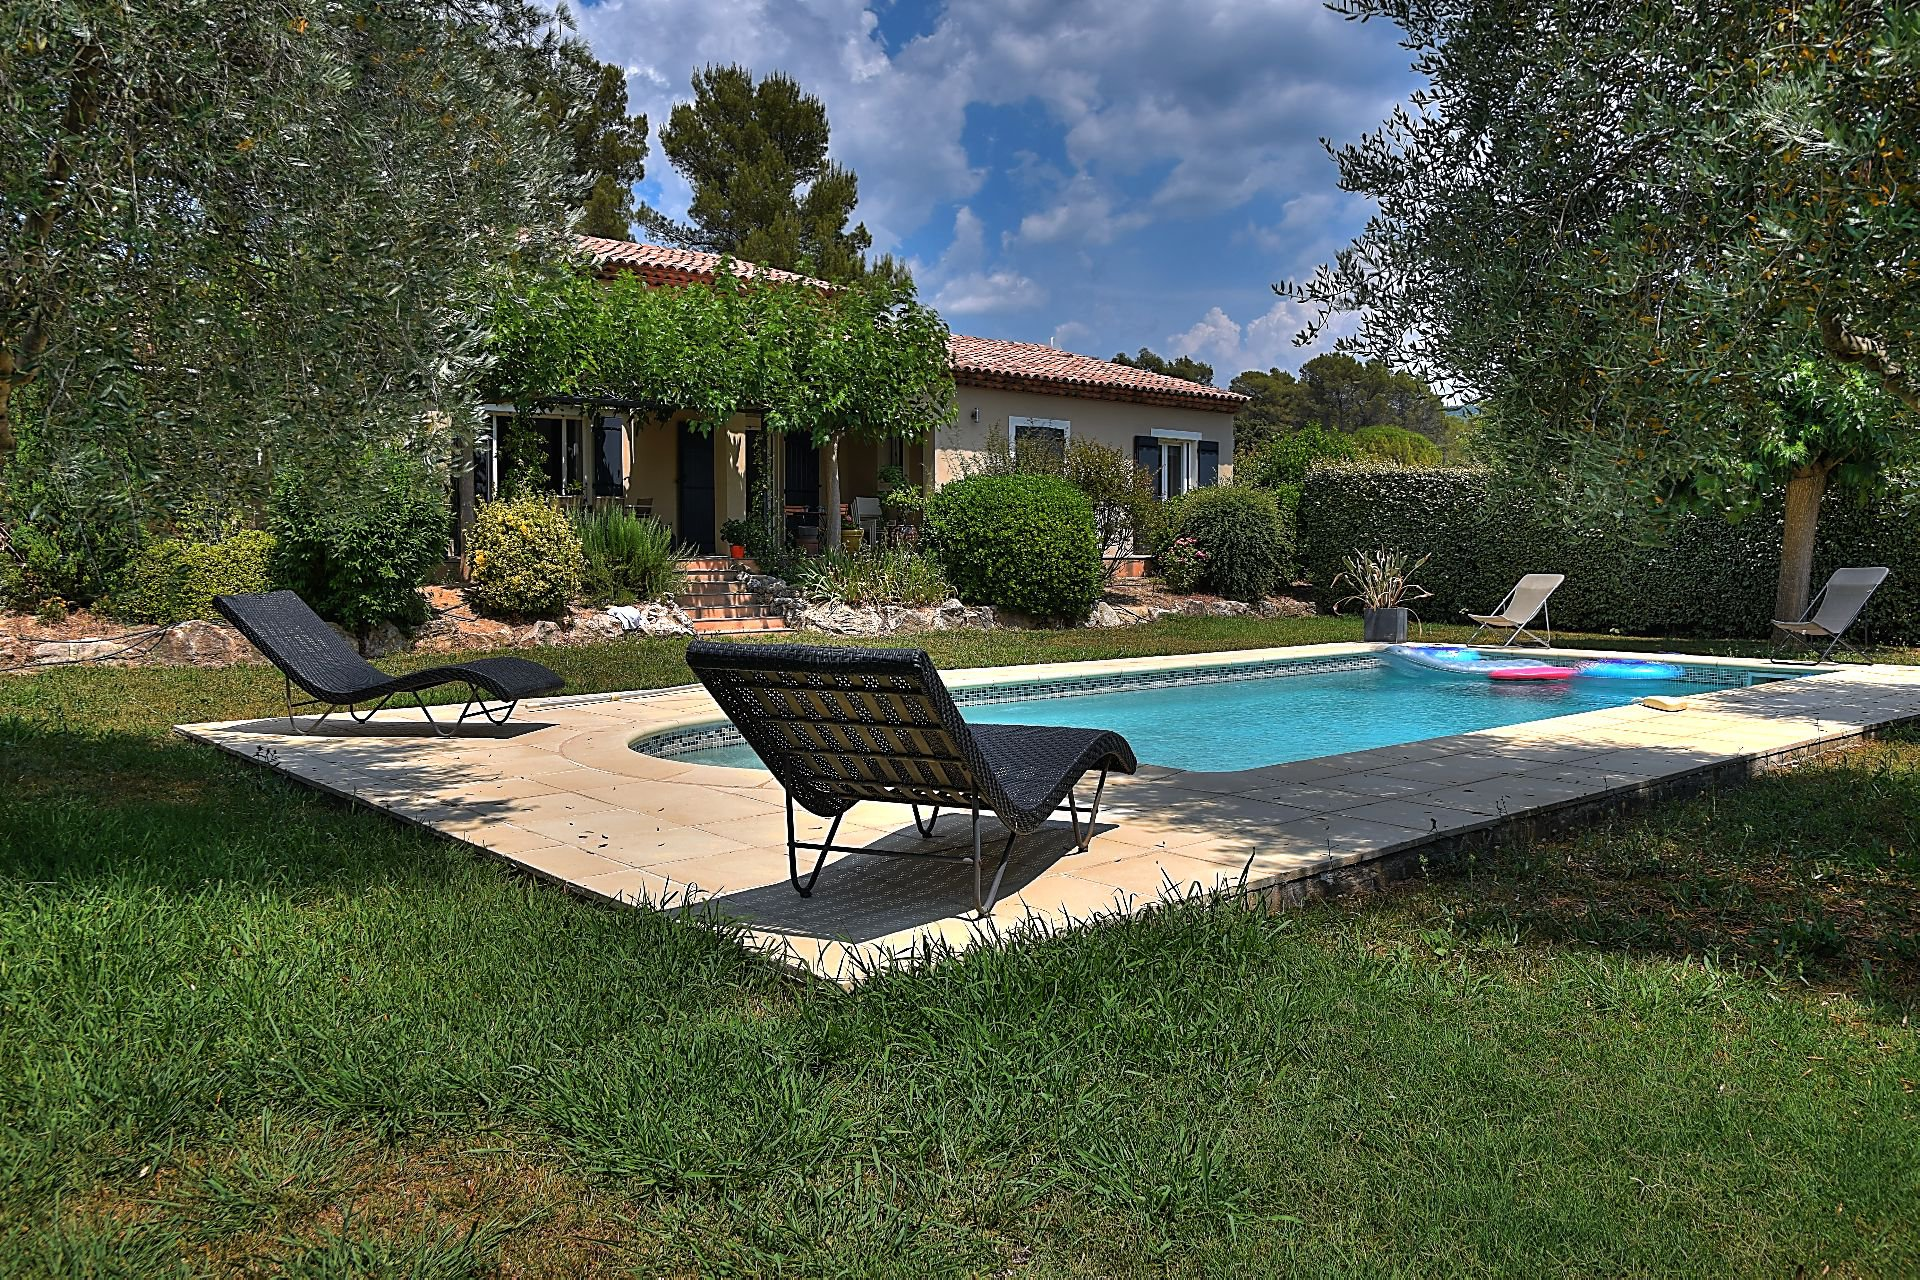 Villa 4 bedrooms swimming pool, on 3400 sqm, Villecroze, Var, Provence